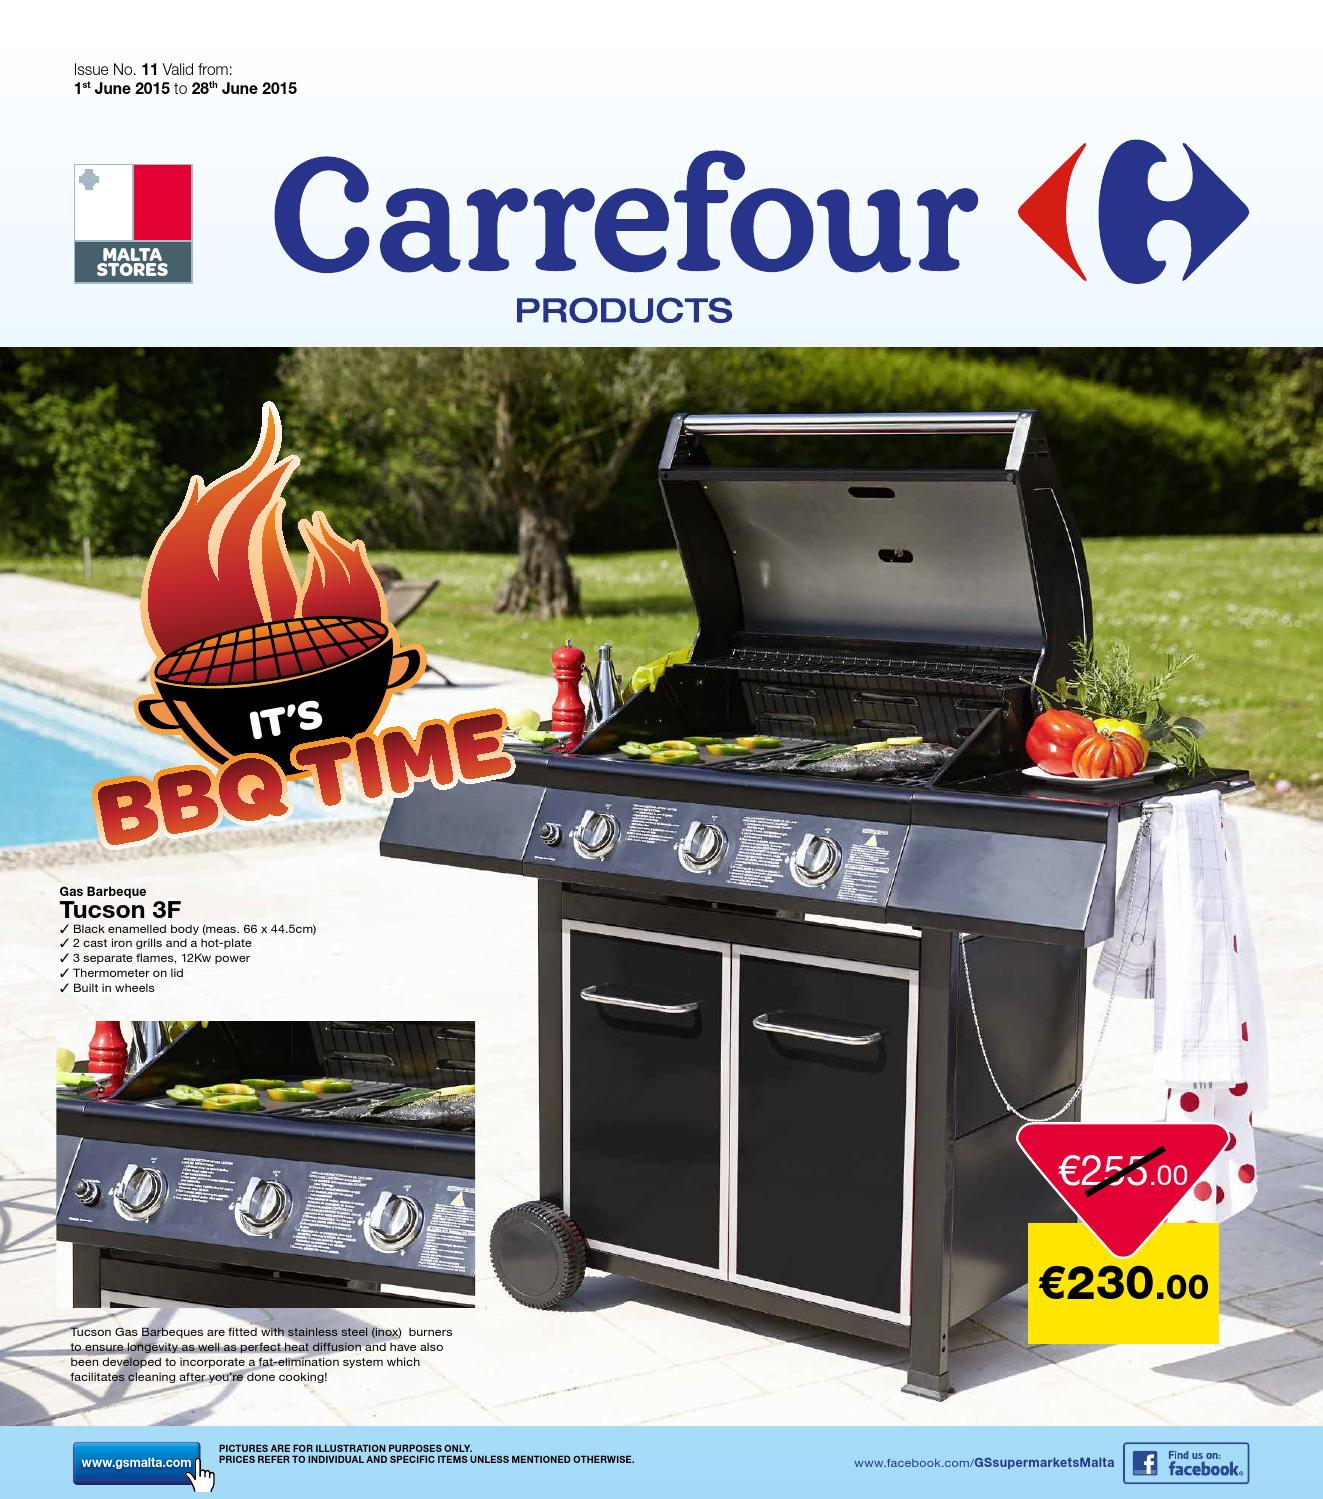 Cheminée D'allumage Barbecue Carrefour Carrefour Products Magazine June 2015 By The Concept